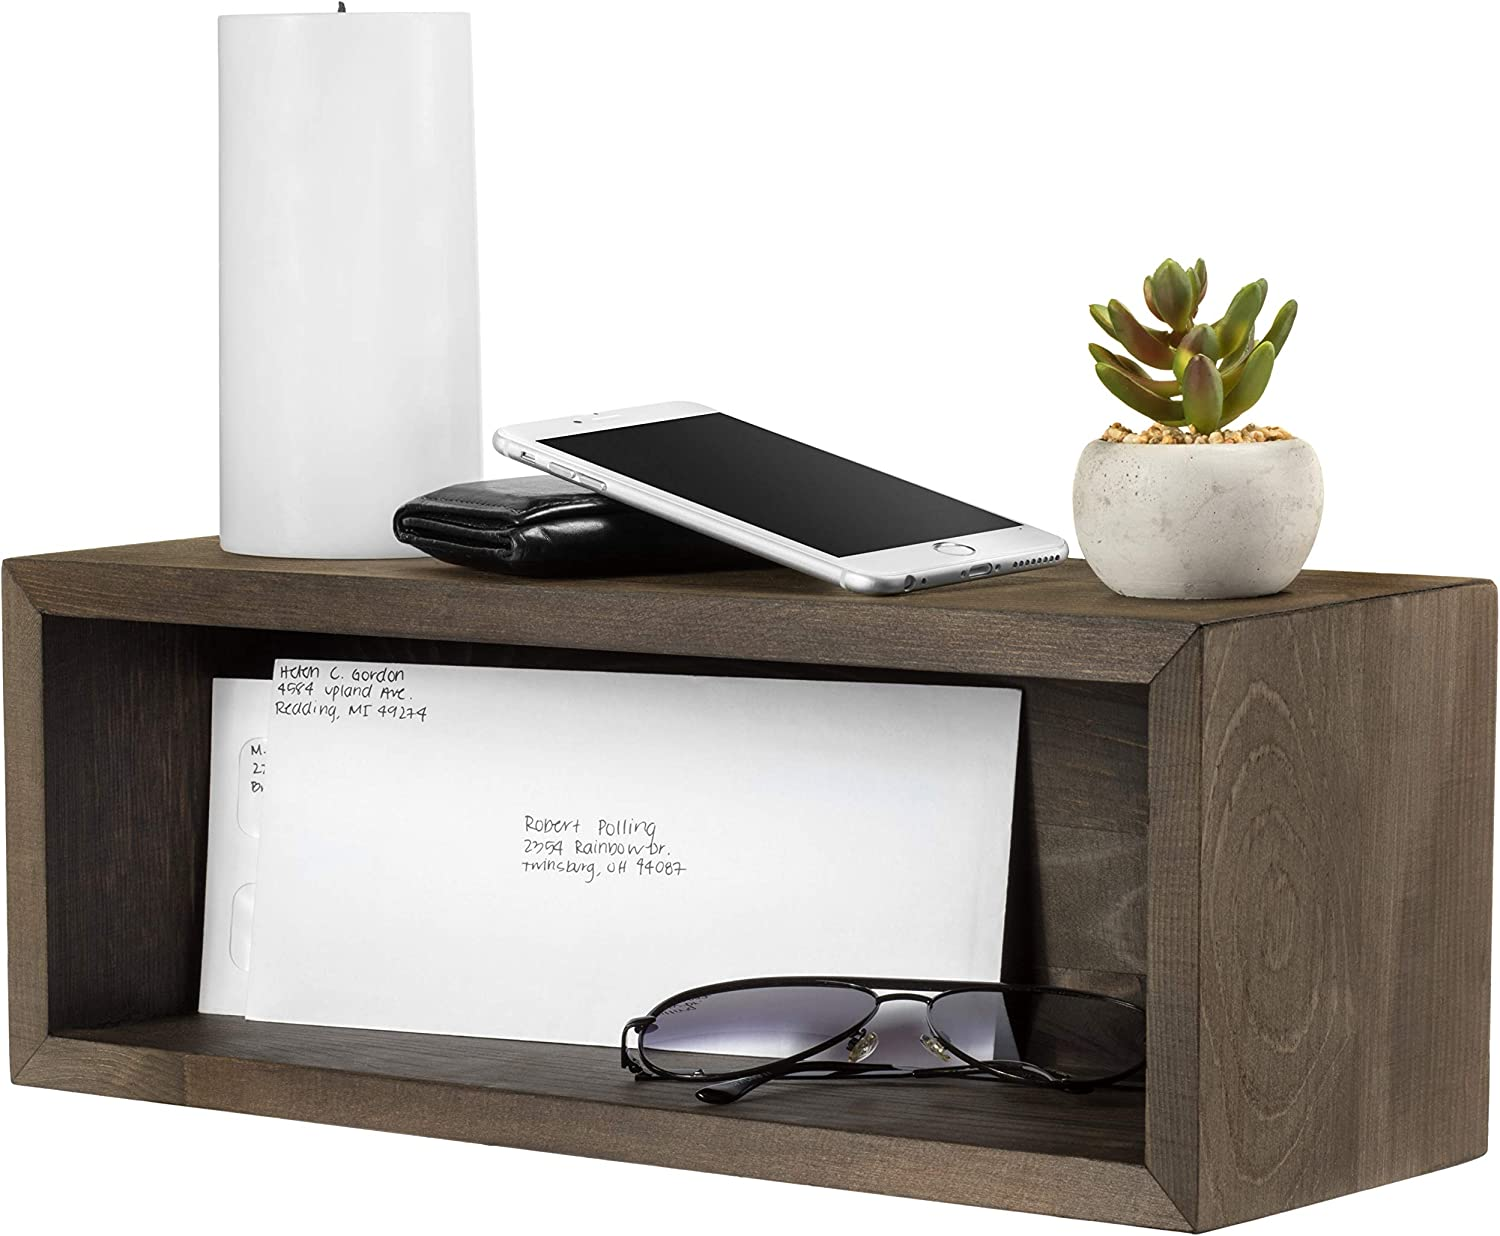 Mildenhall Floating Shelf Organizer - Wall Mount Mail Holder with Optional Key Hooks